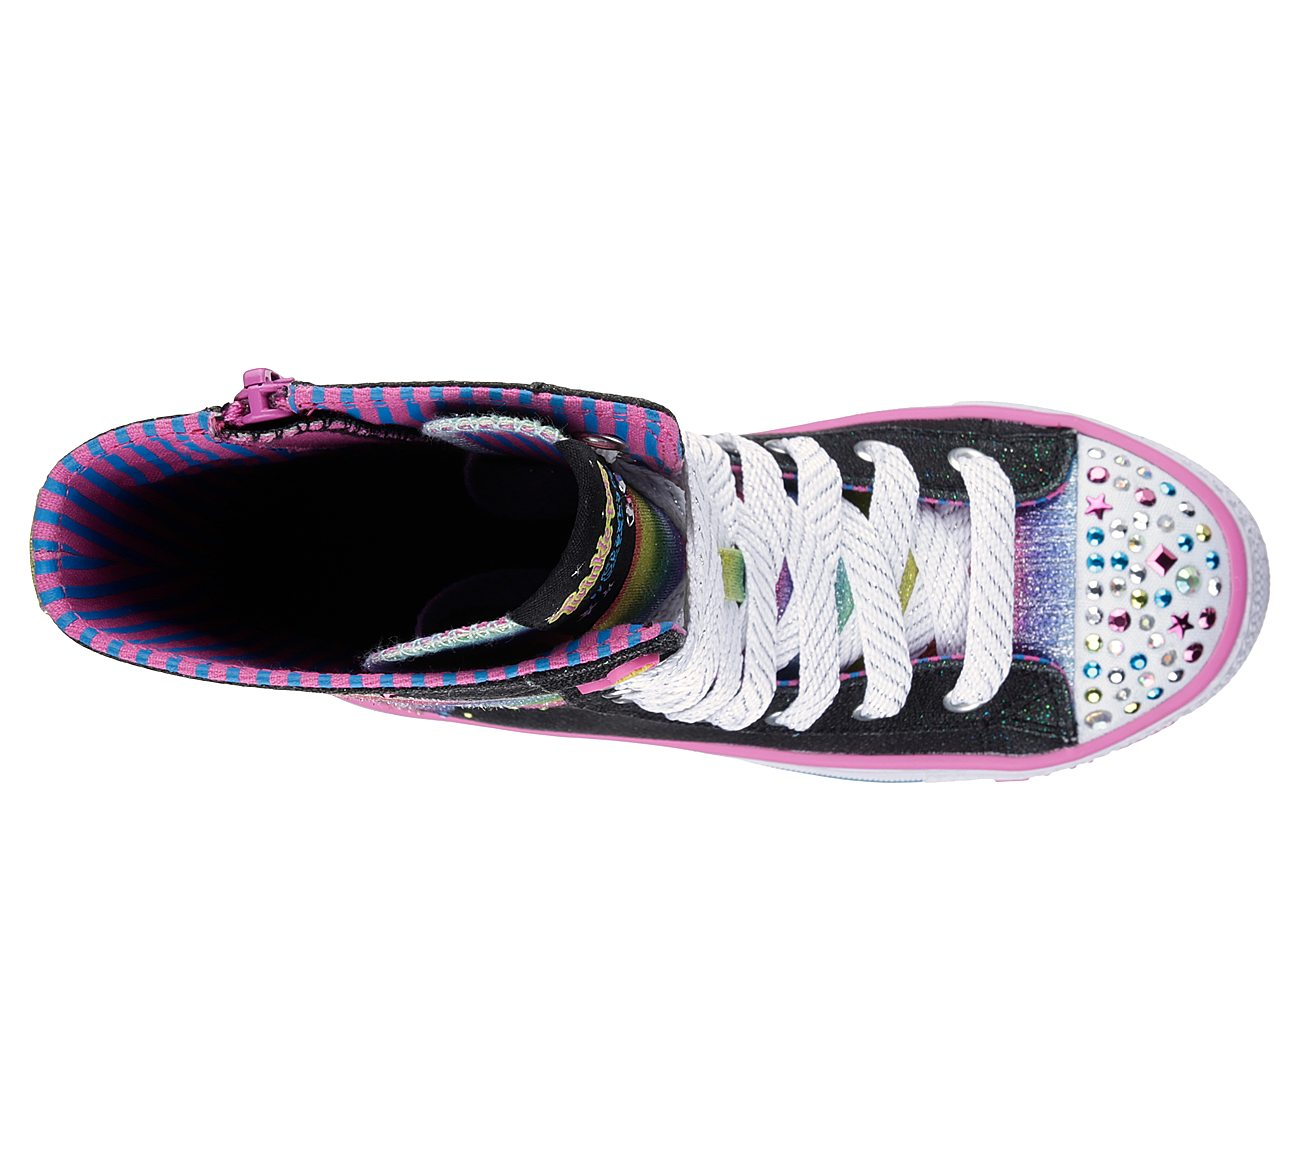 198267202ab3d Buy SKECHERS Twinkle Toes  Shuffles - Flutter Fun S-Lights Shoes ...